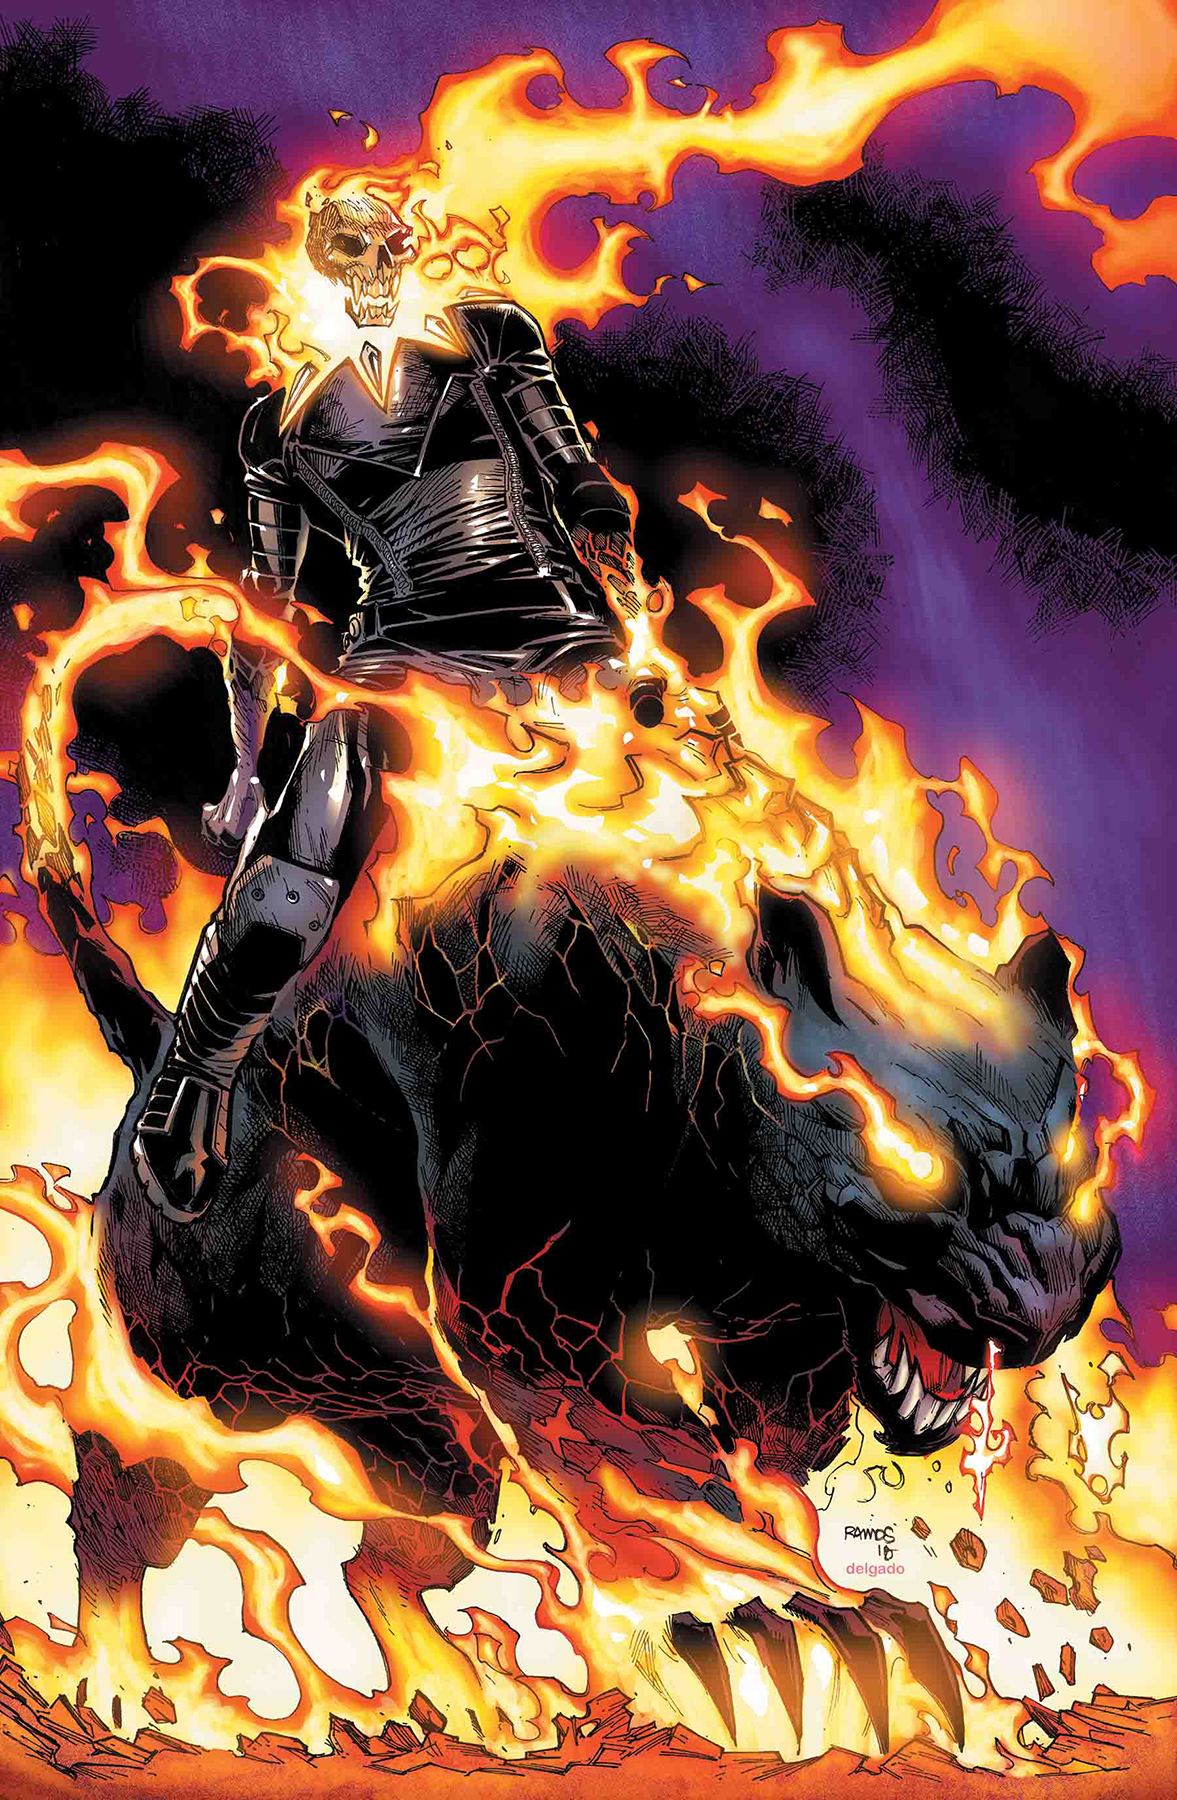 INFINITY WARS GHOST PANTHER #1 (OF 2)